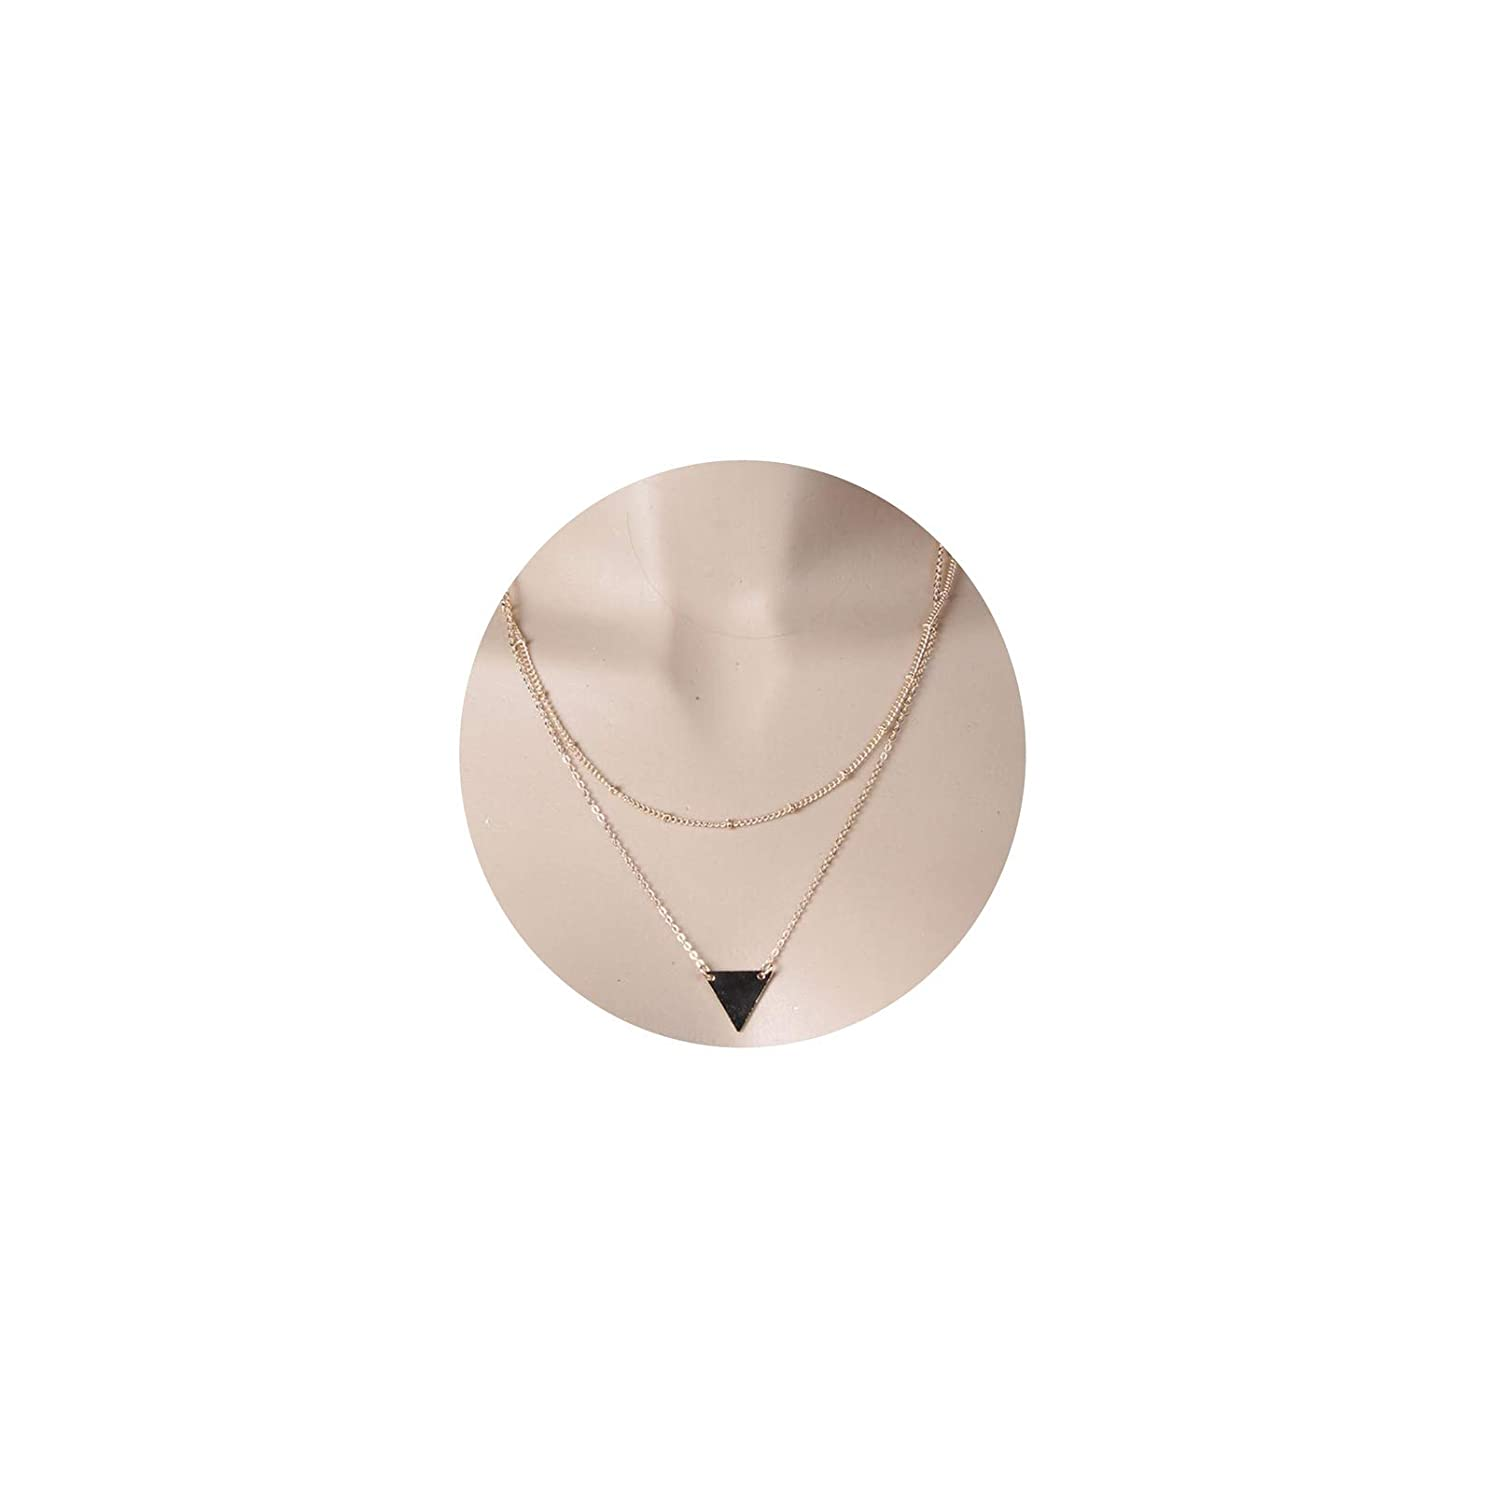 AMDXD Jewelry Multilayer Necklaces Gold Triangle Sequin Chain Necklaces Punk Necklaces for Women